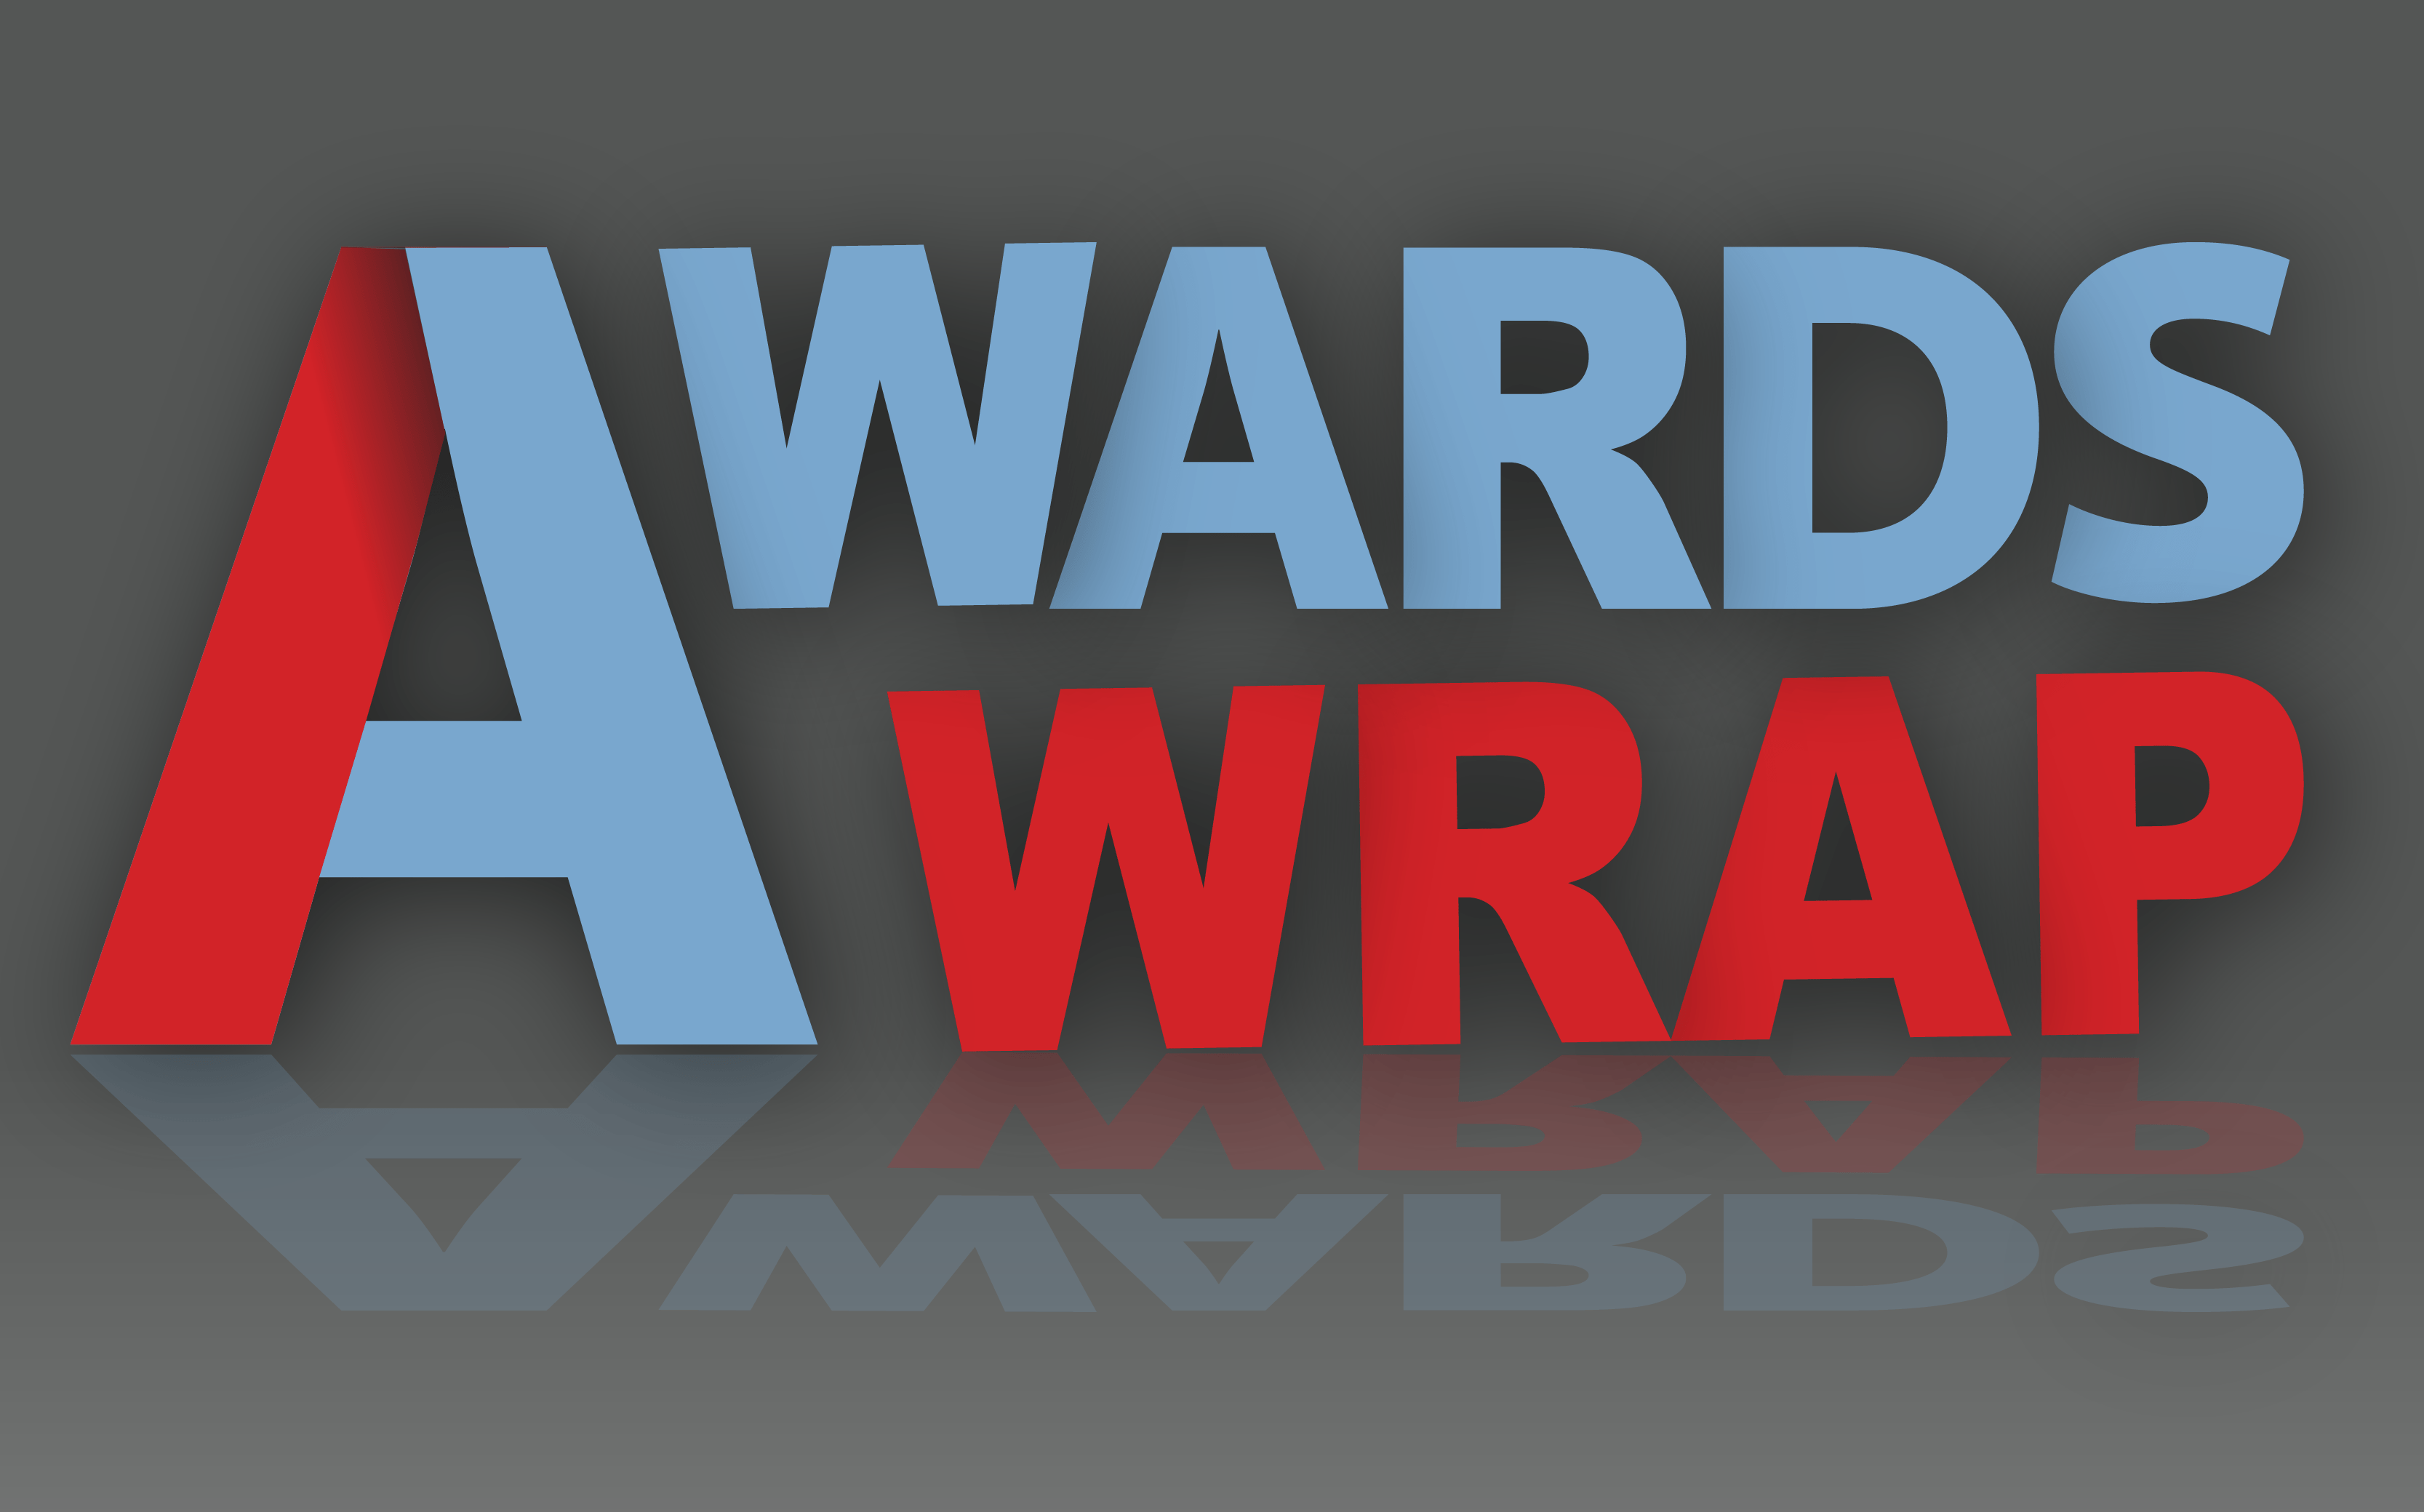 Awards Wrap: Entry deadline extended for African Digital Media Awards, APEX Awards winners